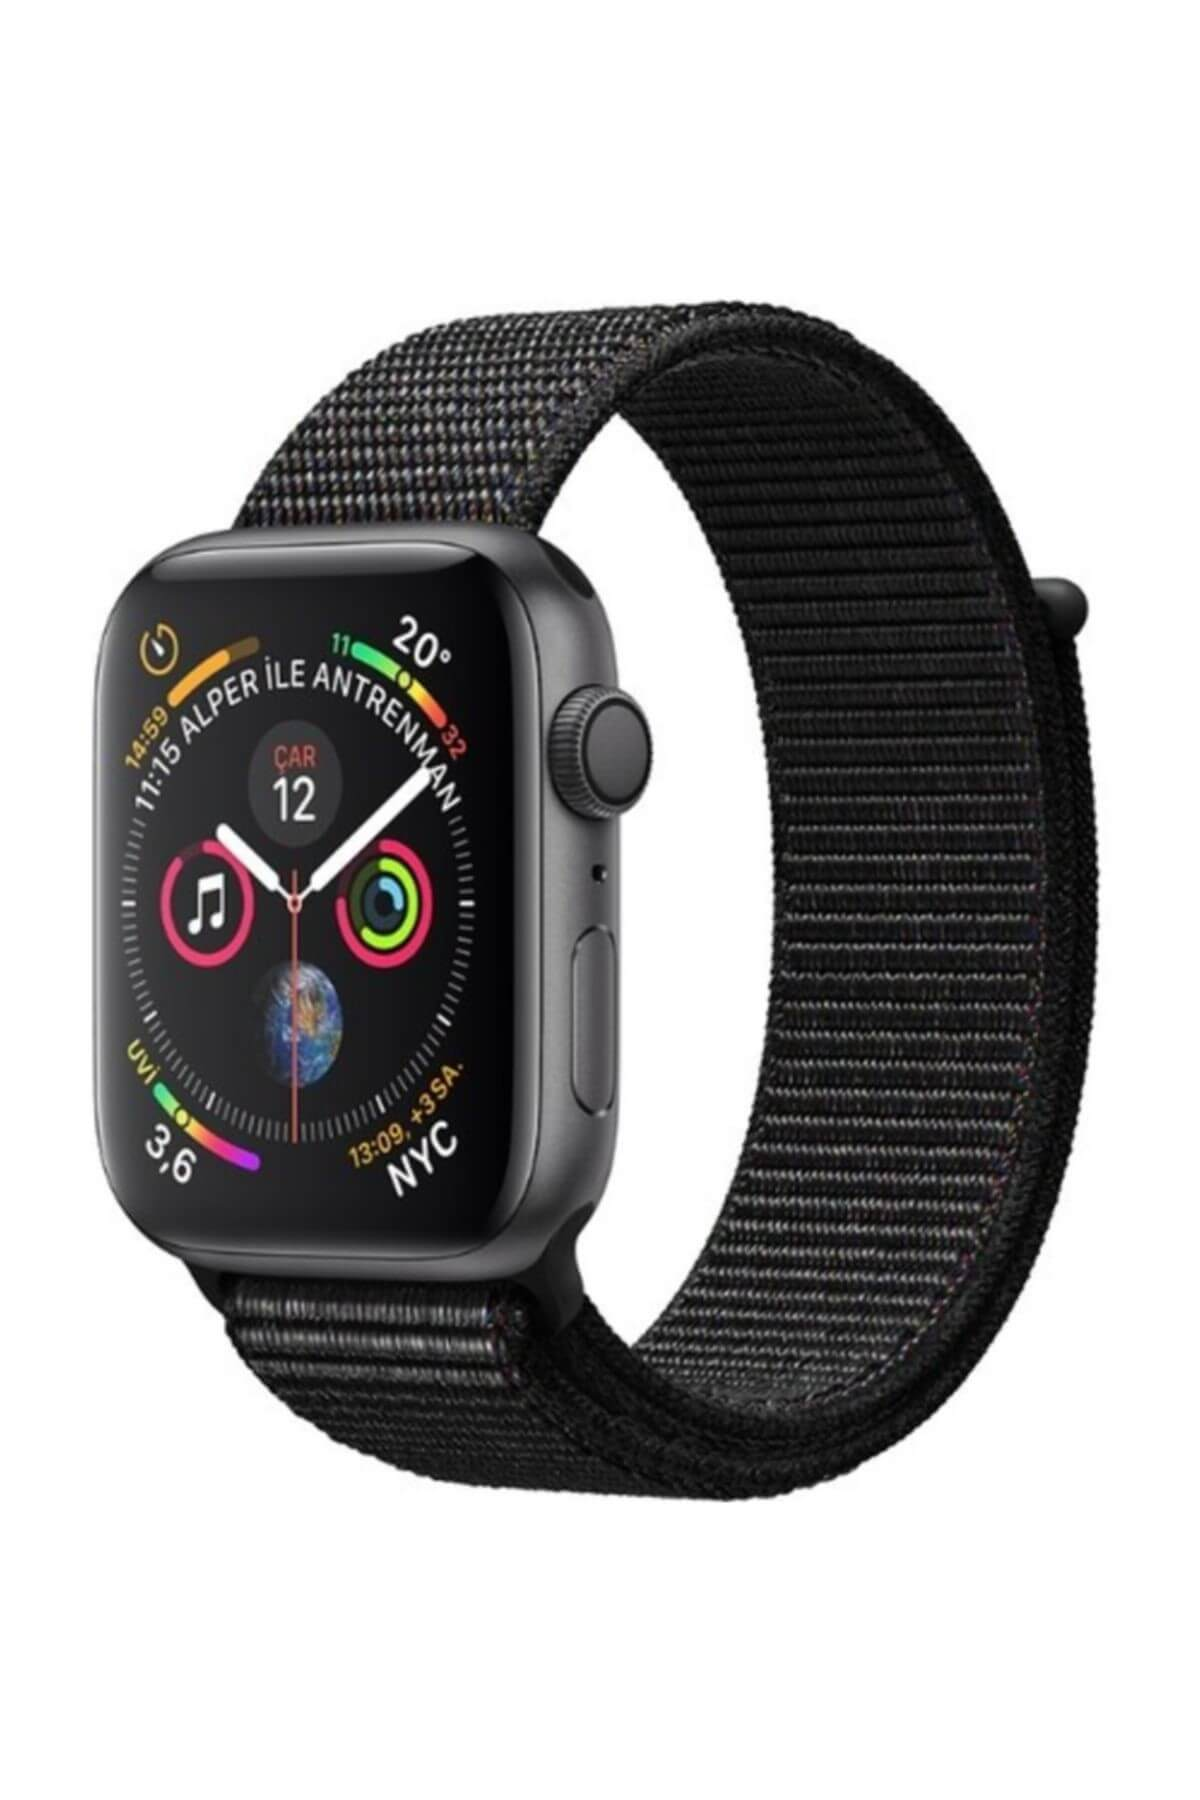 Apple Watch Seri 4 Mu672tu a 40mm Gps Uzay Grisi Alüminyum